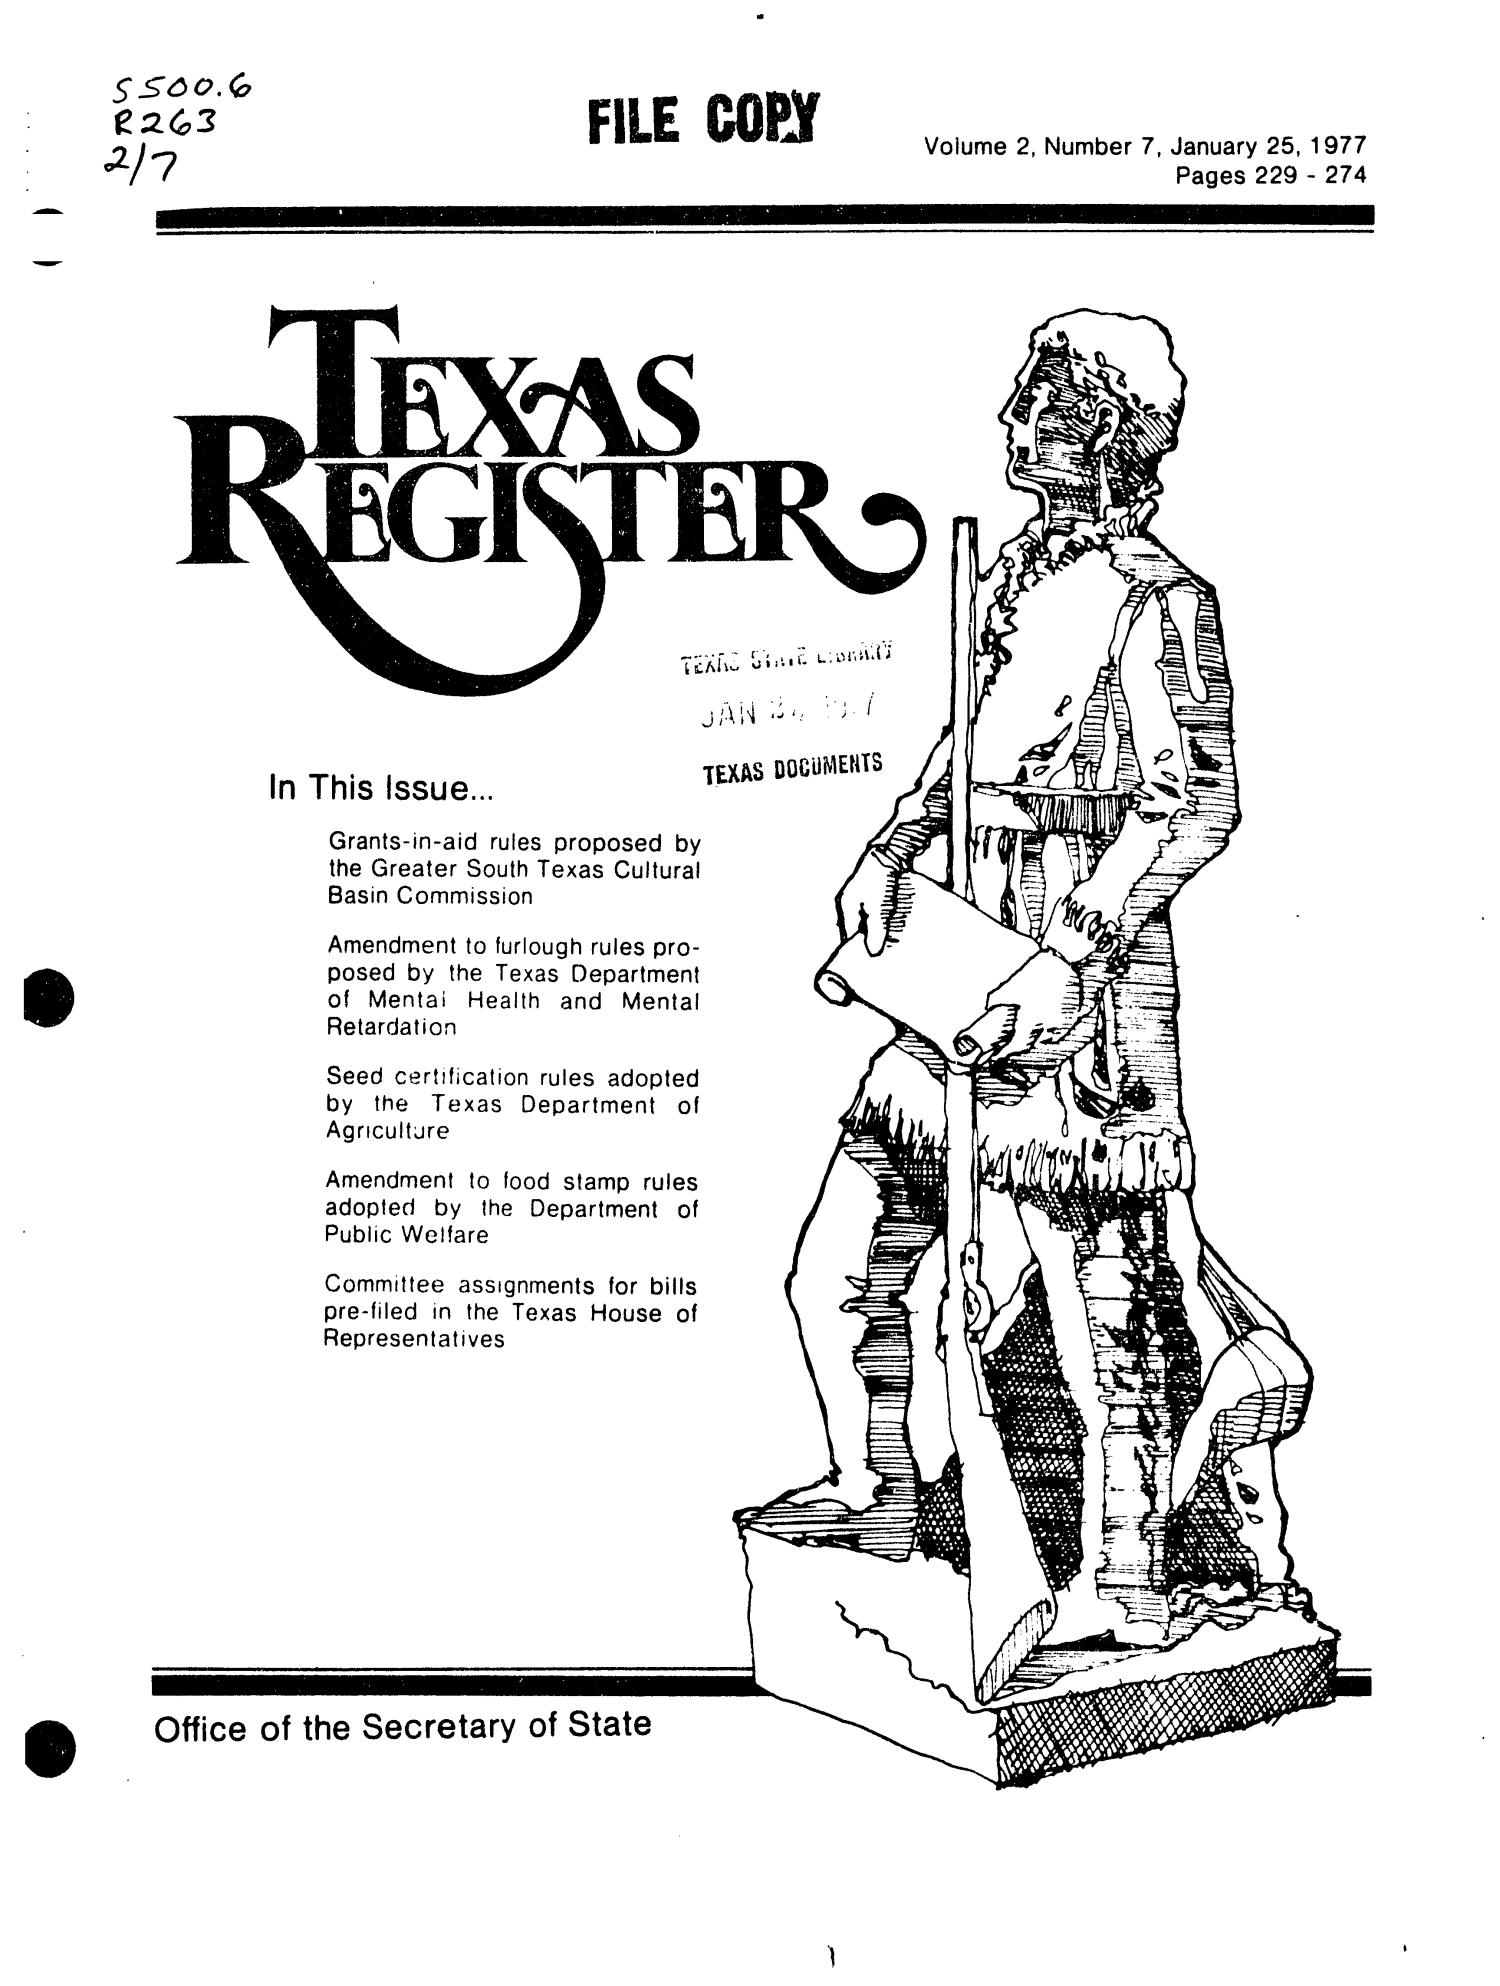 Texas Register, Volume 2, Number 7, Pages 229-274, January 25, 1977                                                                                                      Title Page